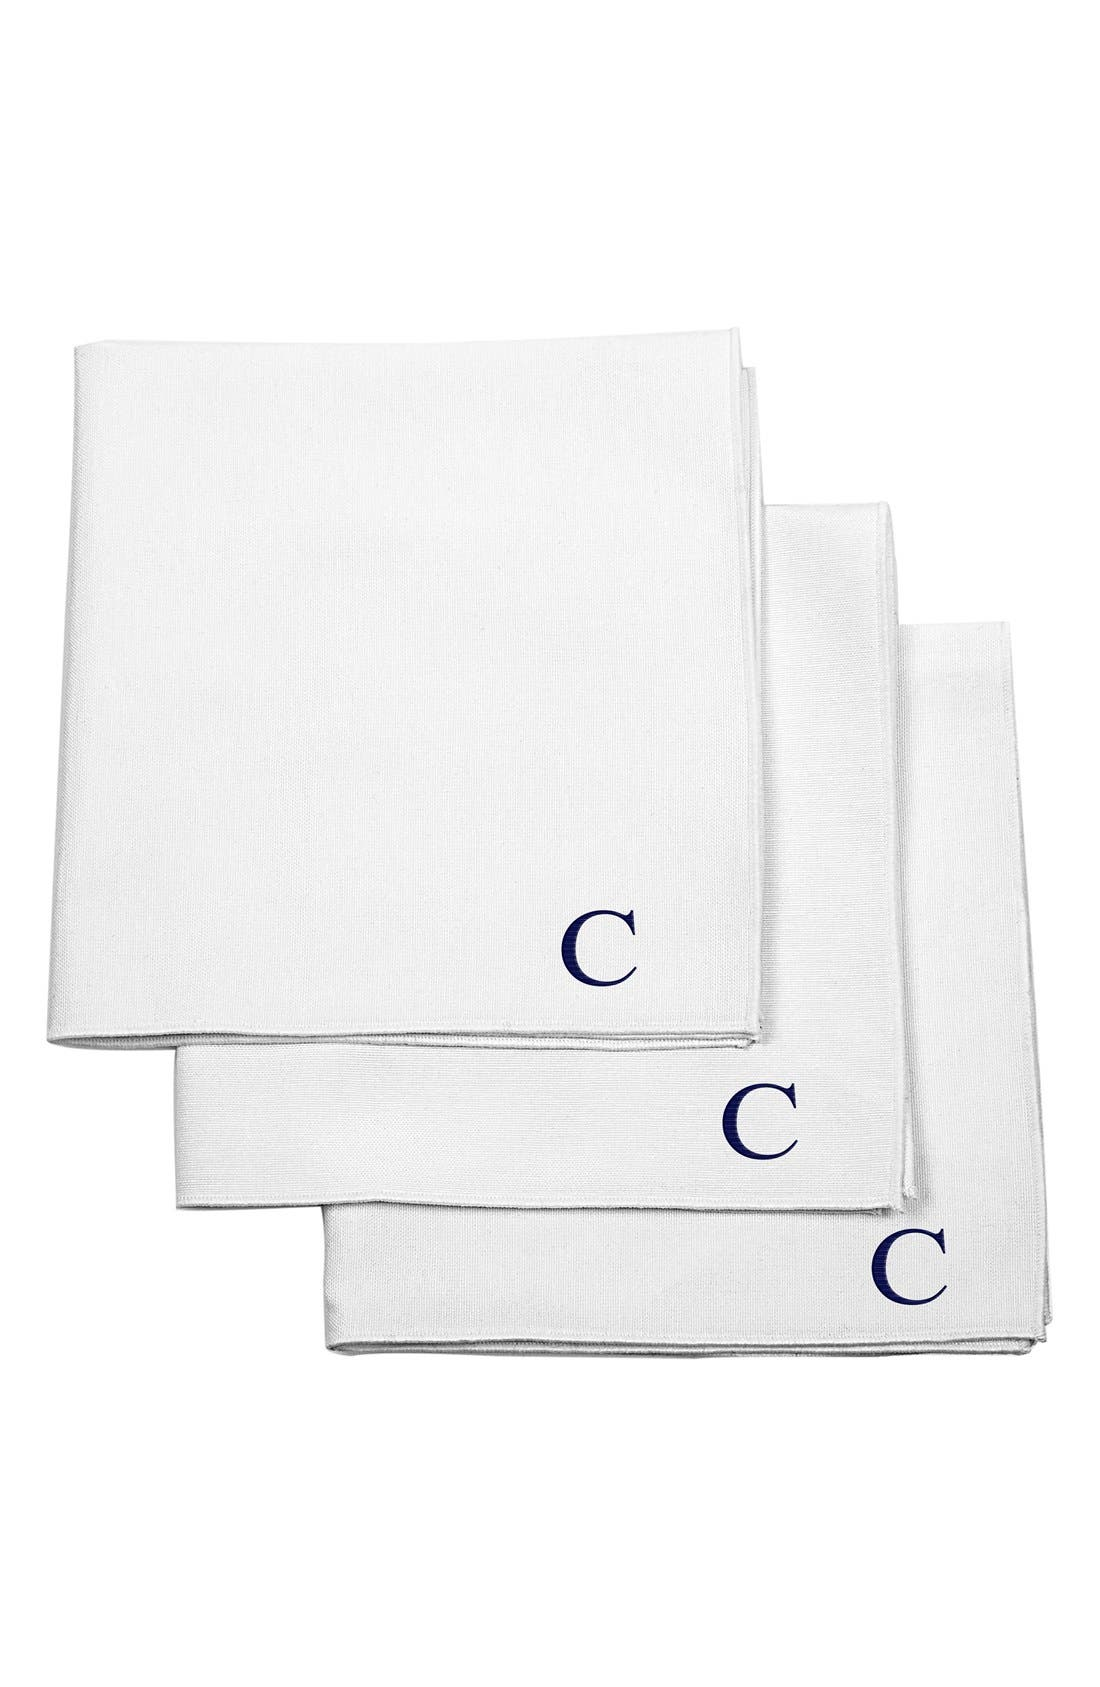 Set of 3 Monogram Cotton Pocket Squares,                         Main,                         color, C